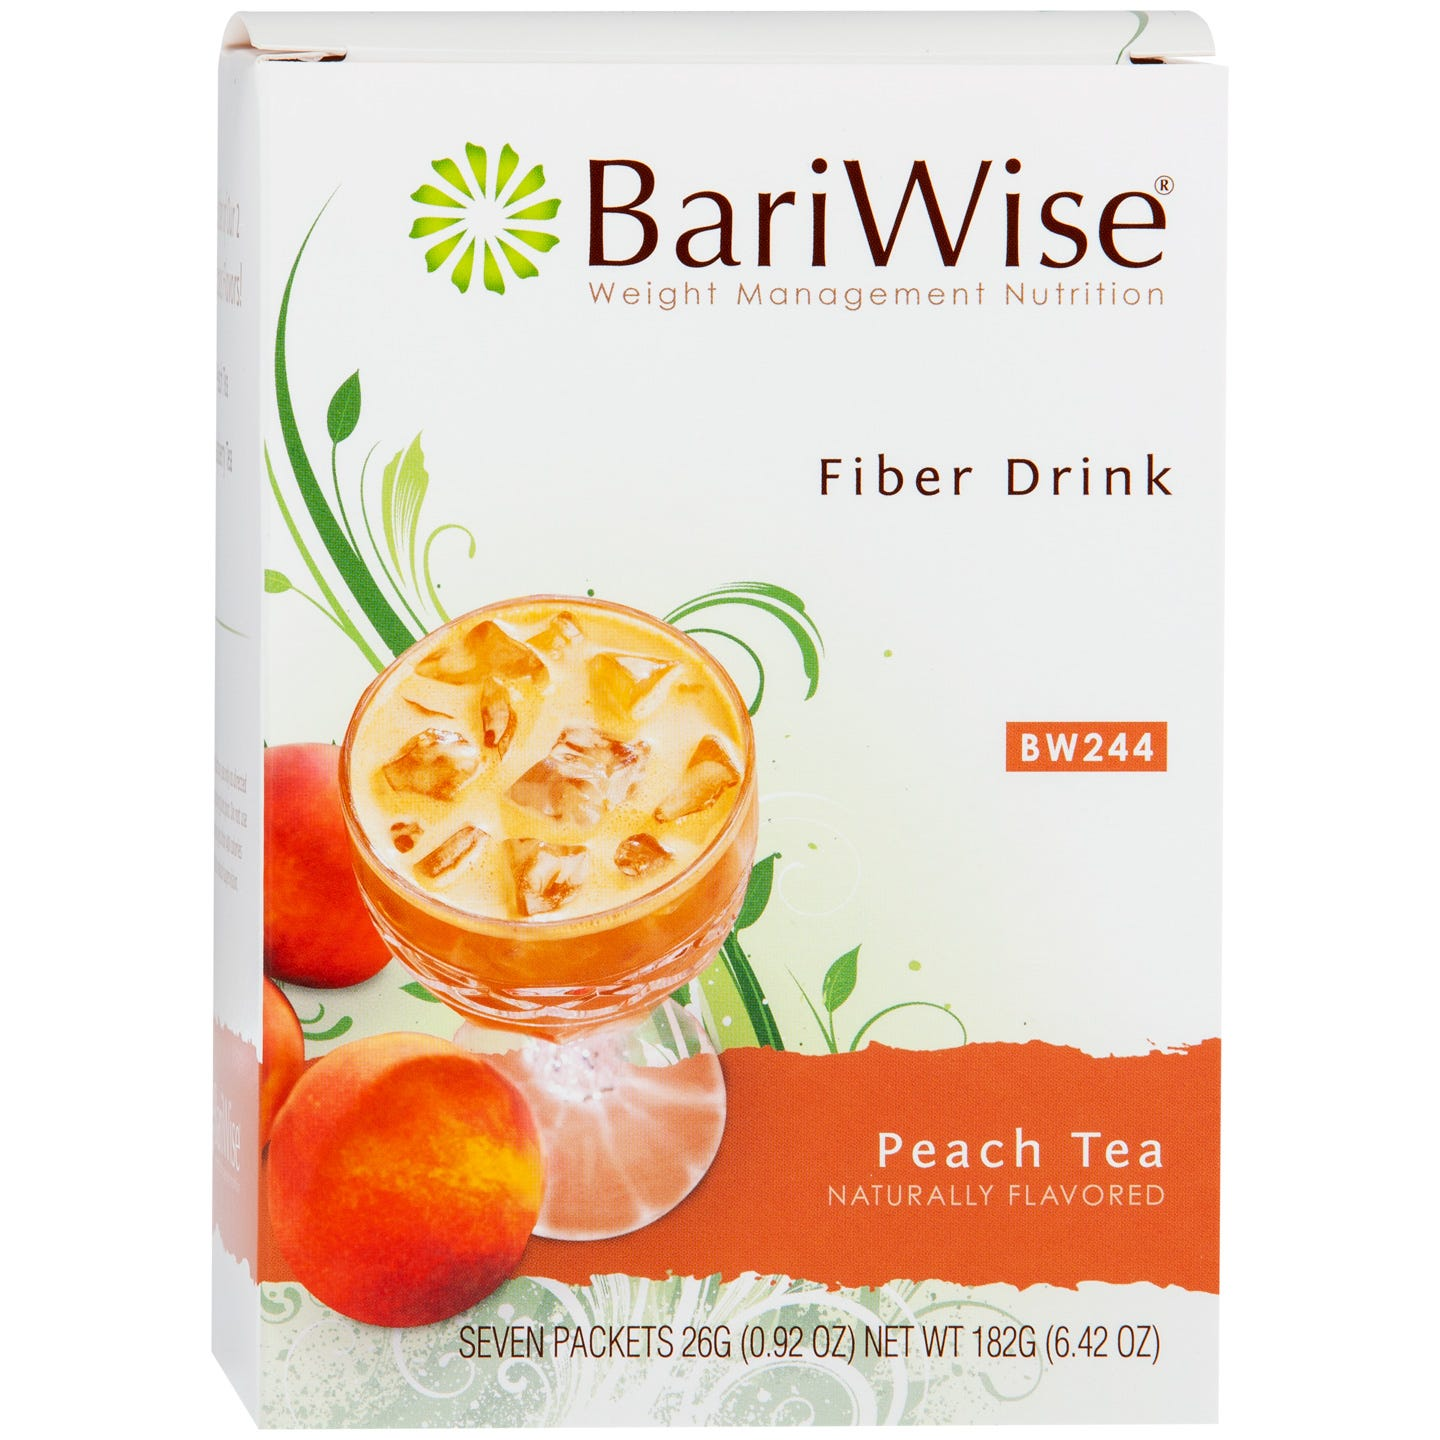 Fiber Drink Peach Tea (7 Ct) - BariWise